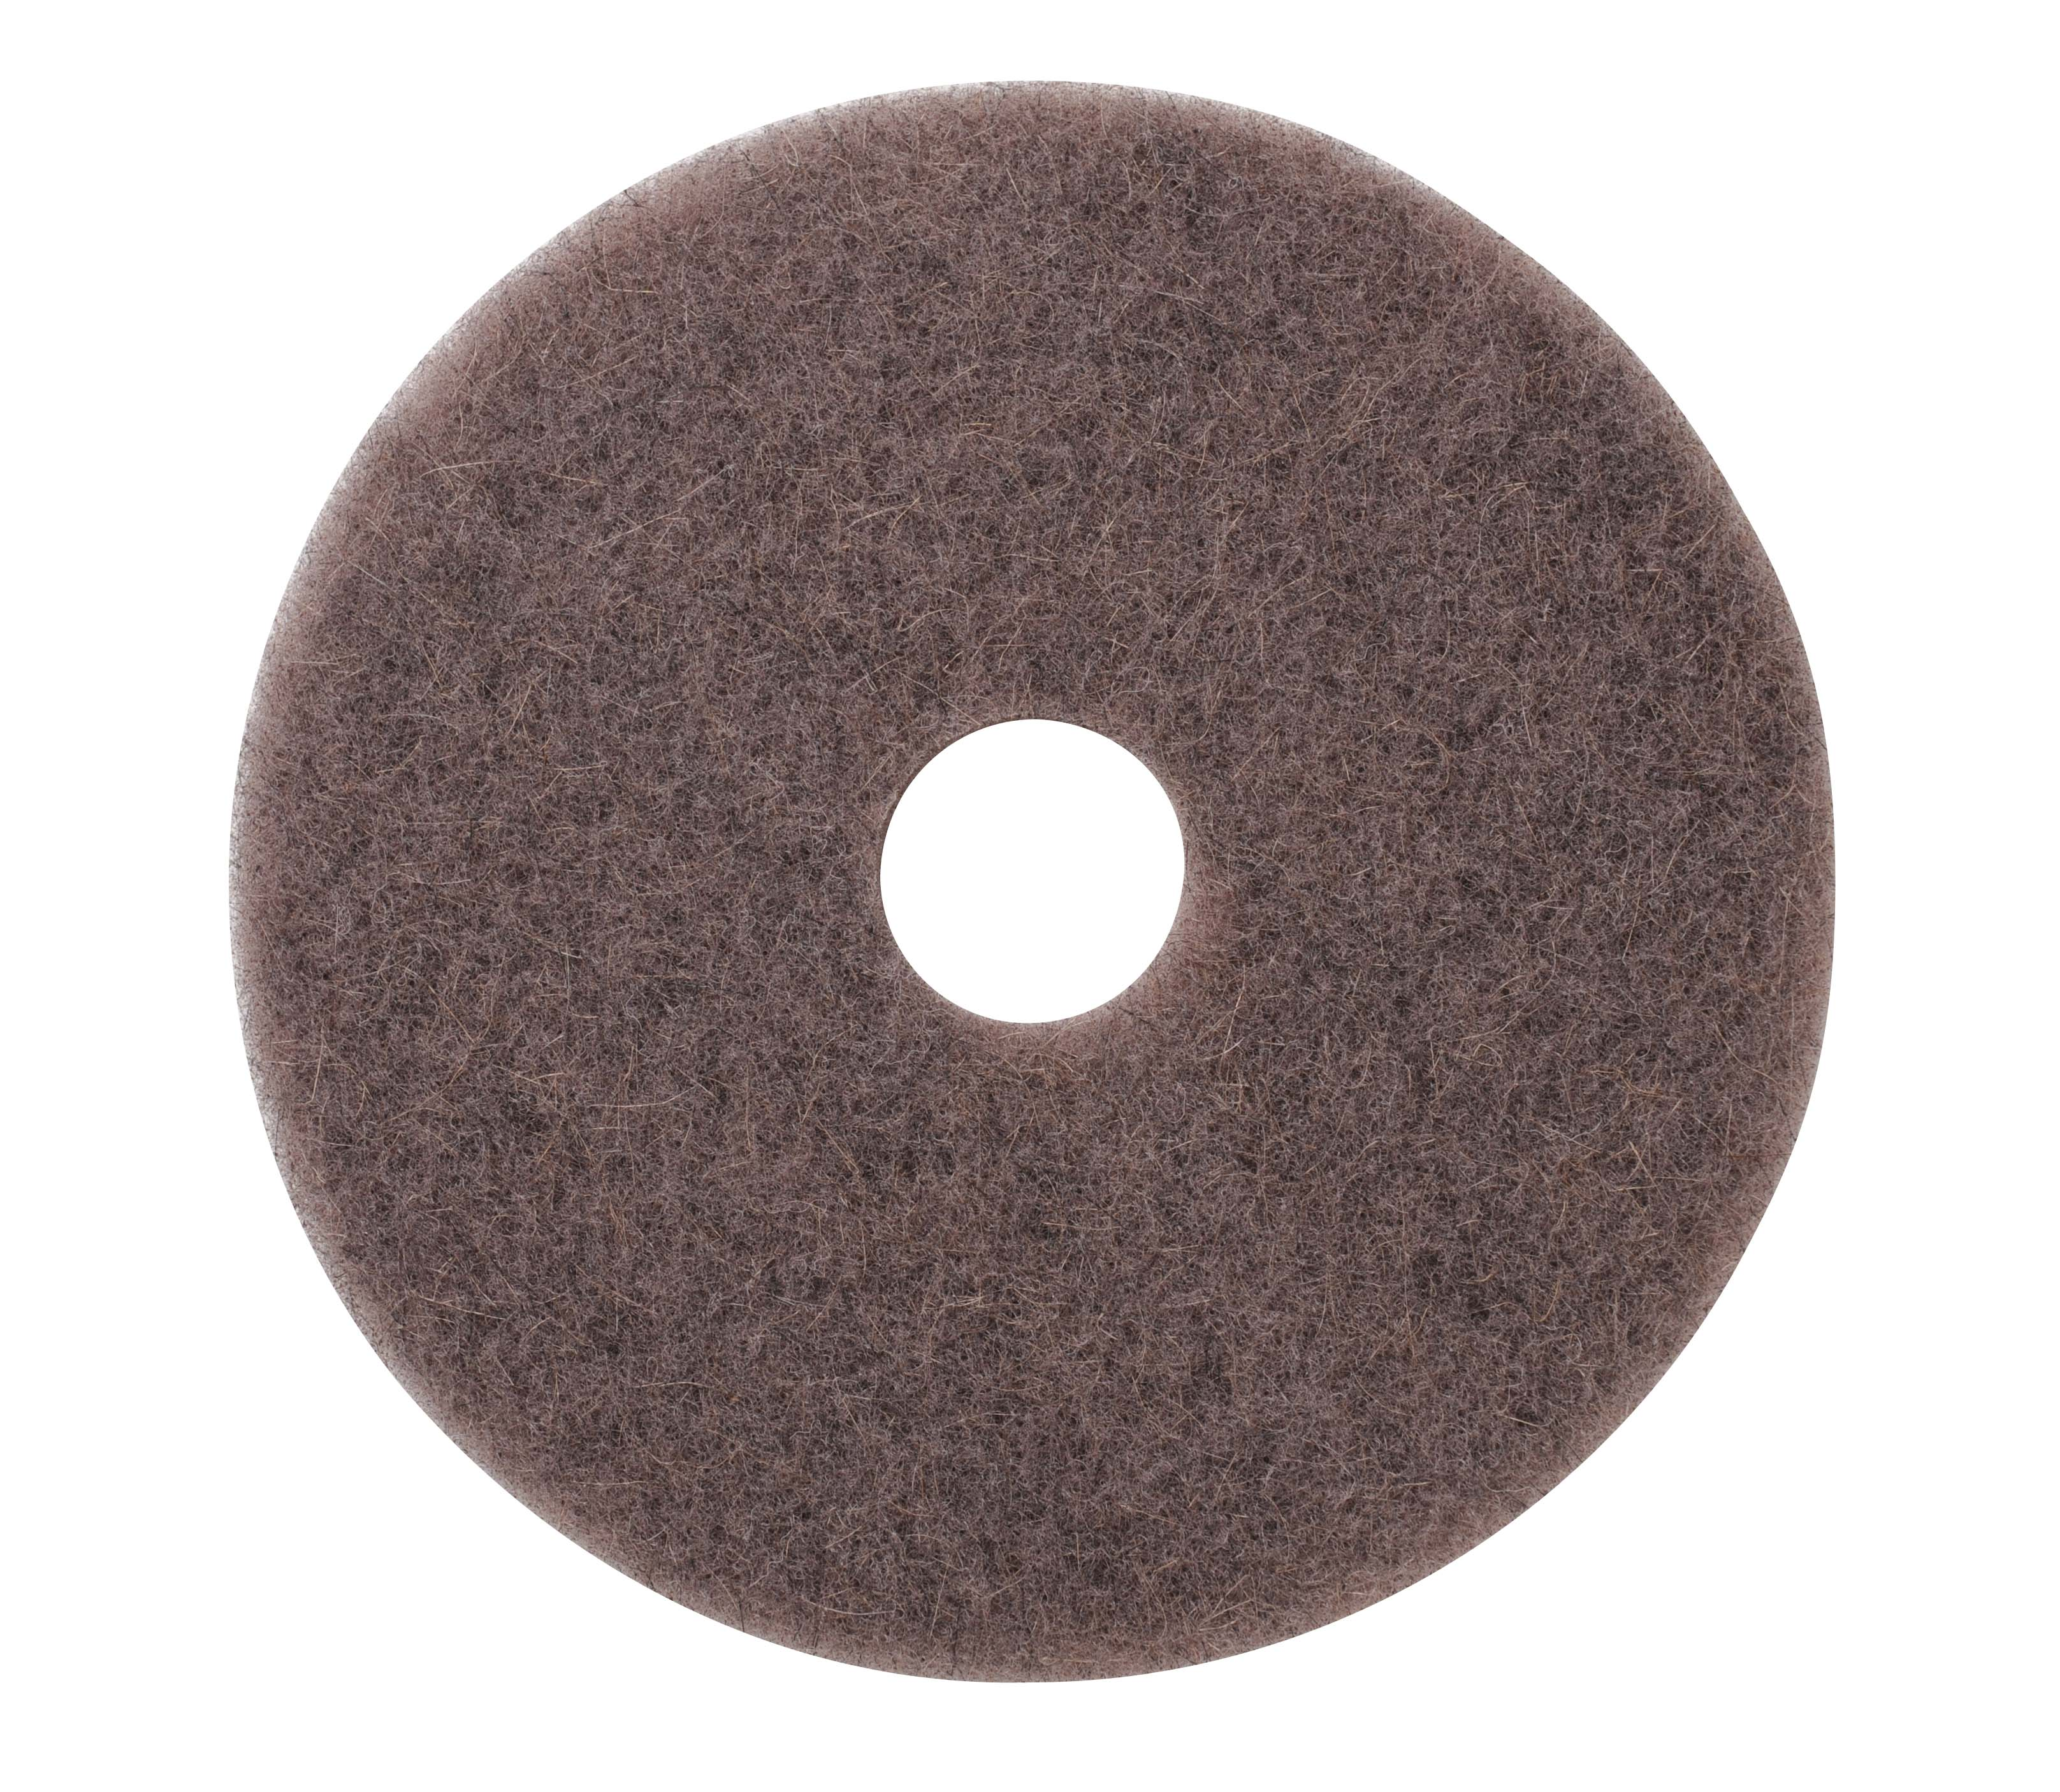 PicturesLogo/NATURAL FIBER BURNISH PADS.jpg